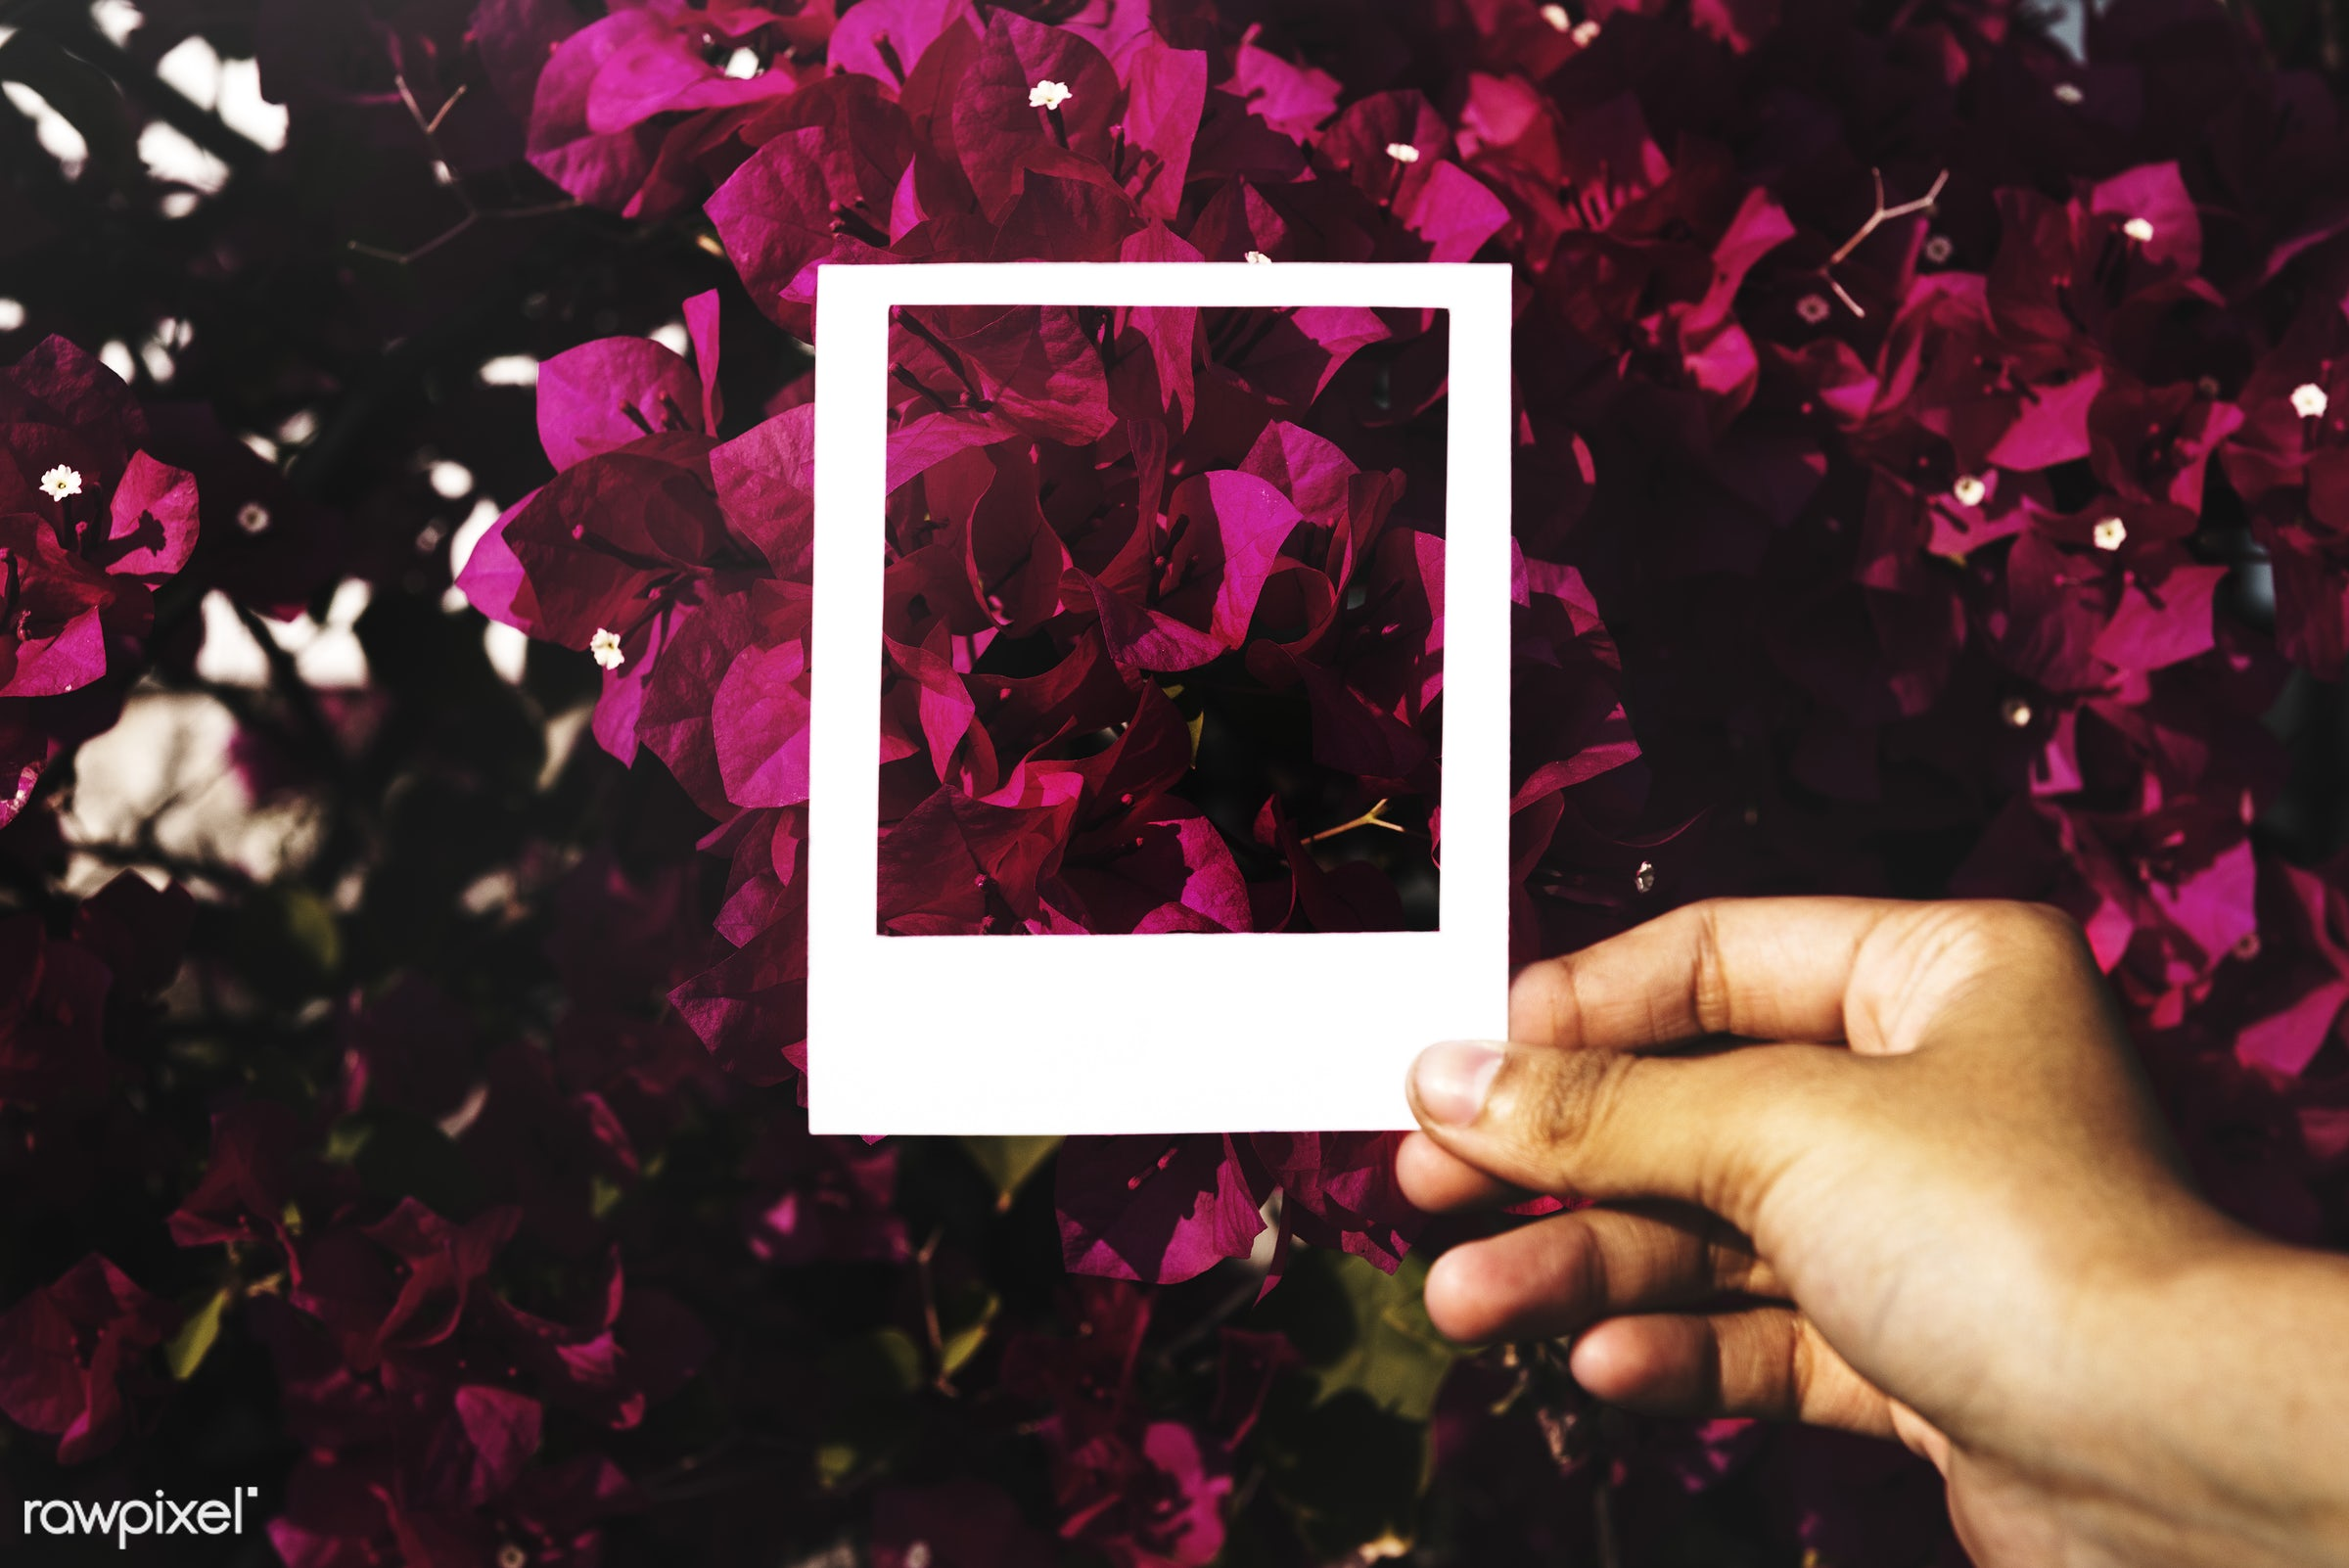 Hand holding photo frame in front of flowers - border, flowers, frame, nature, environment, blank, empty, hole, cutout, hand...